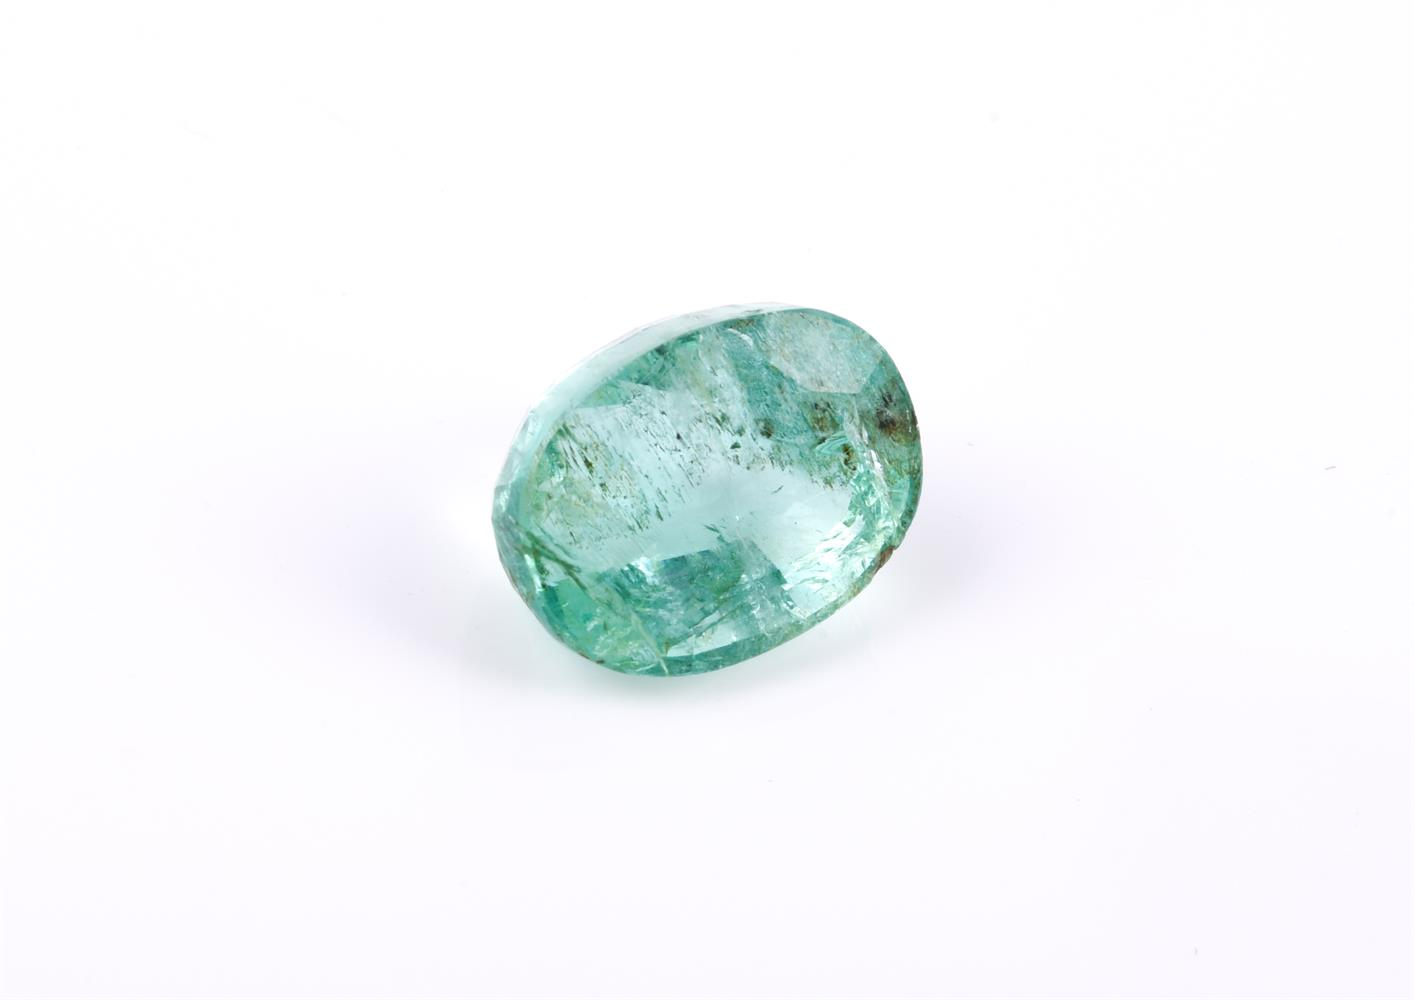 † An unmounted oval cut emerald